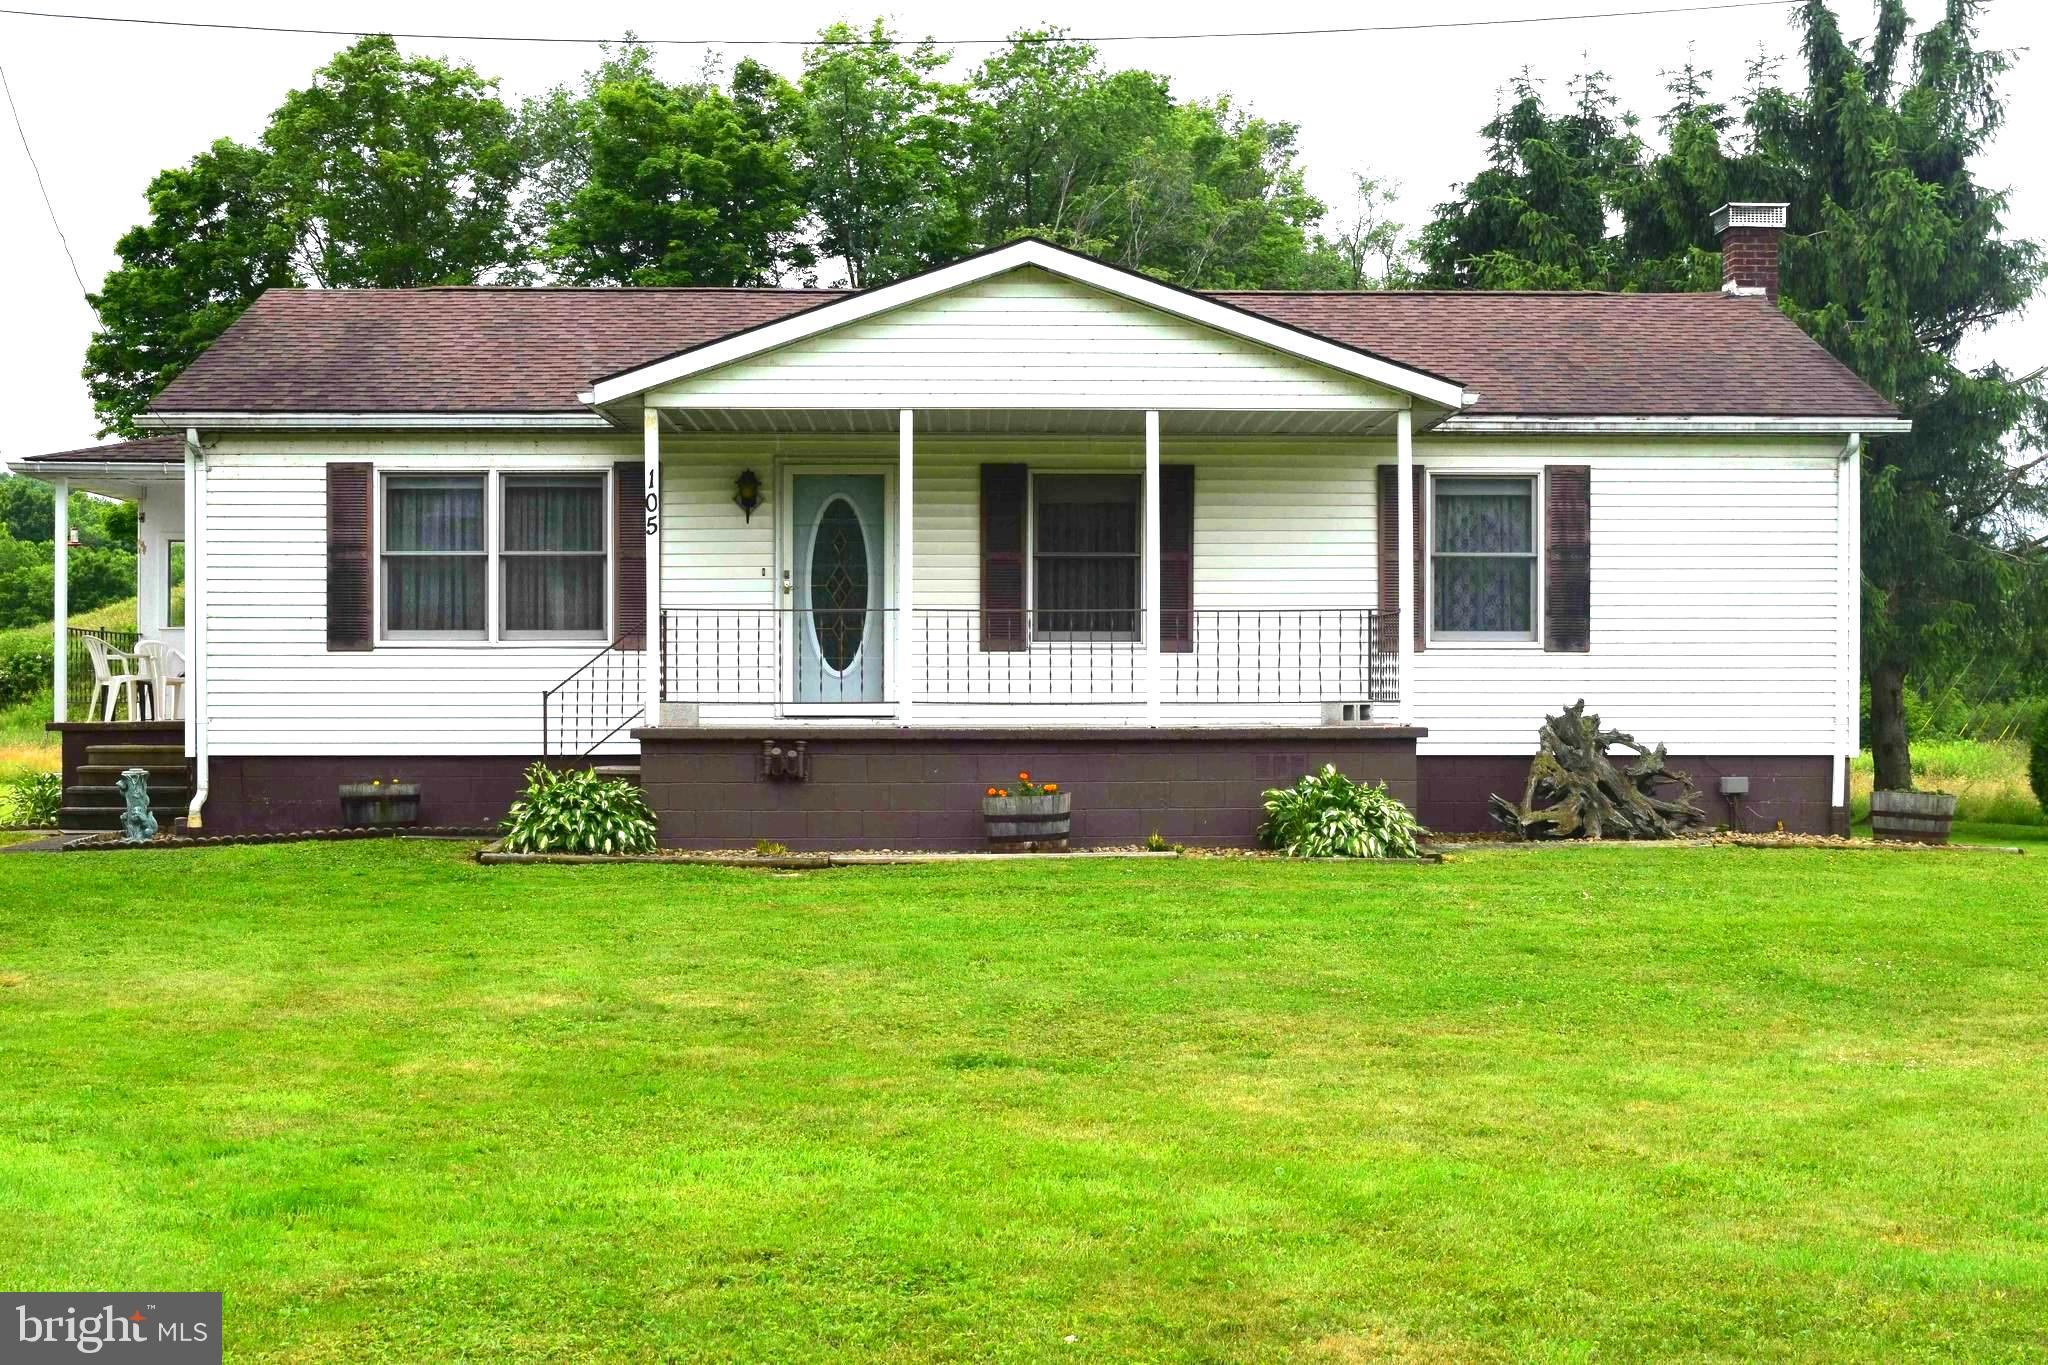 105 SIPPLE DR, MEYERSDALE, PA 15552